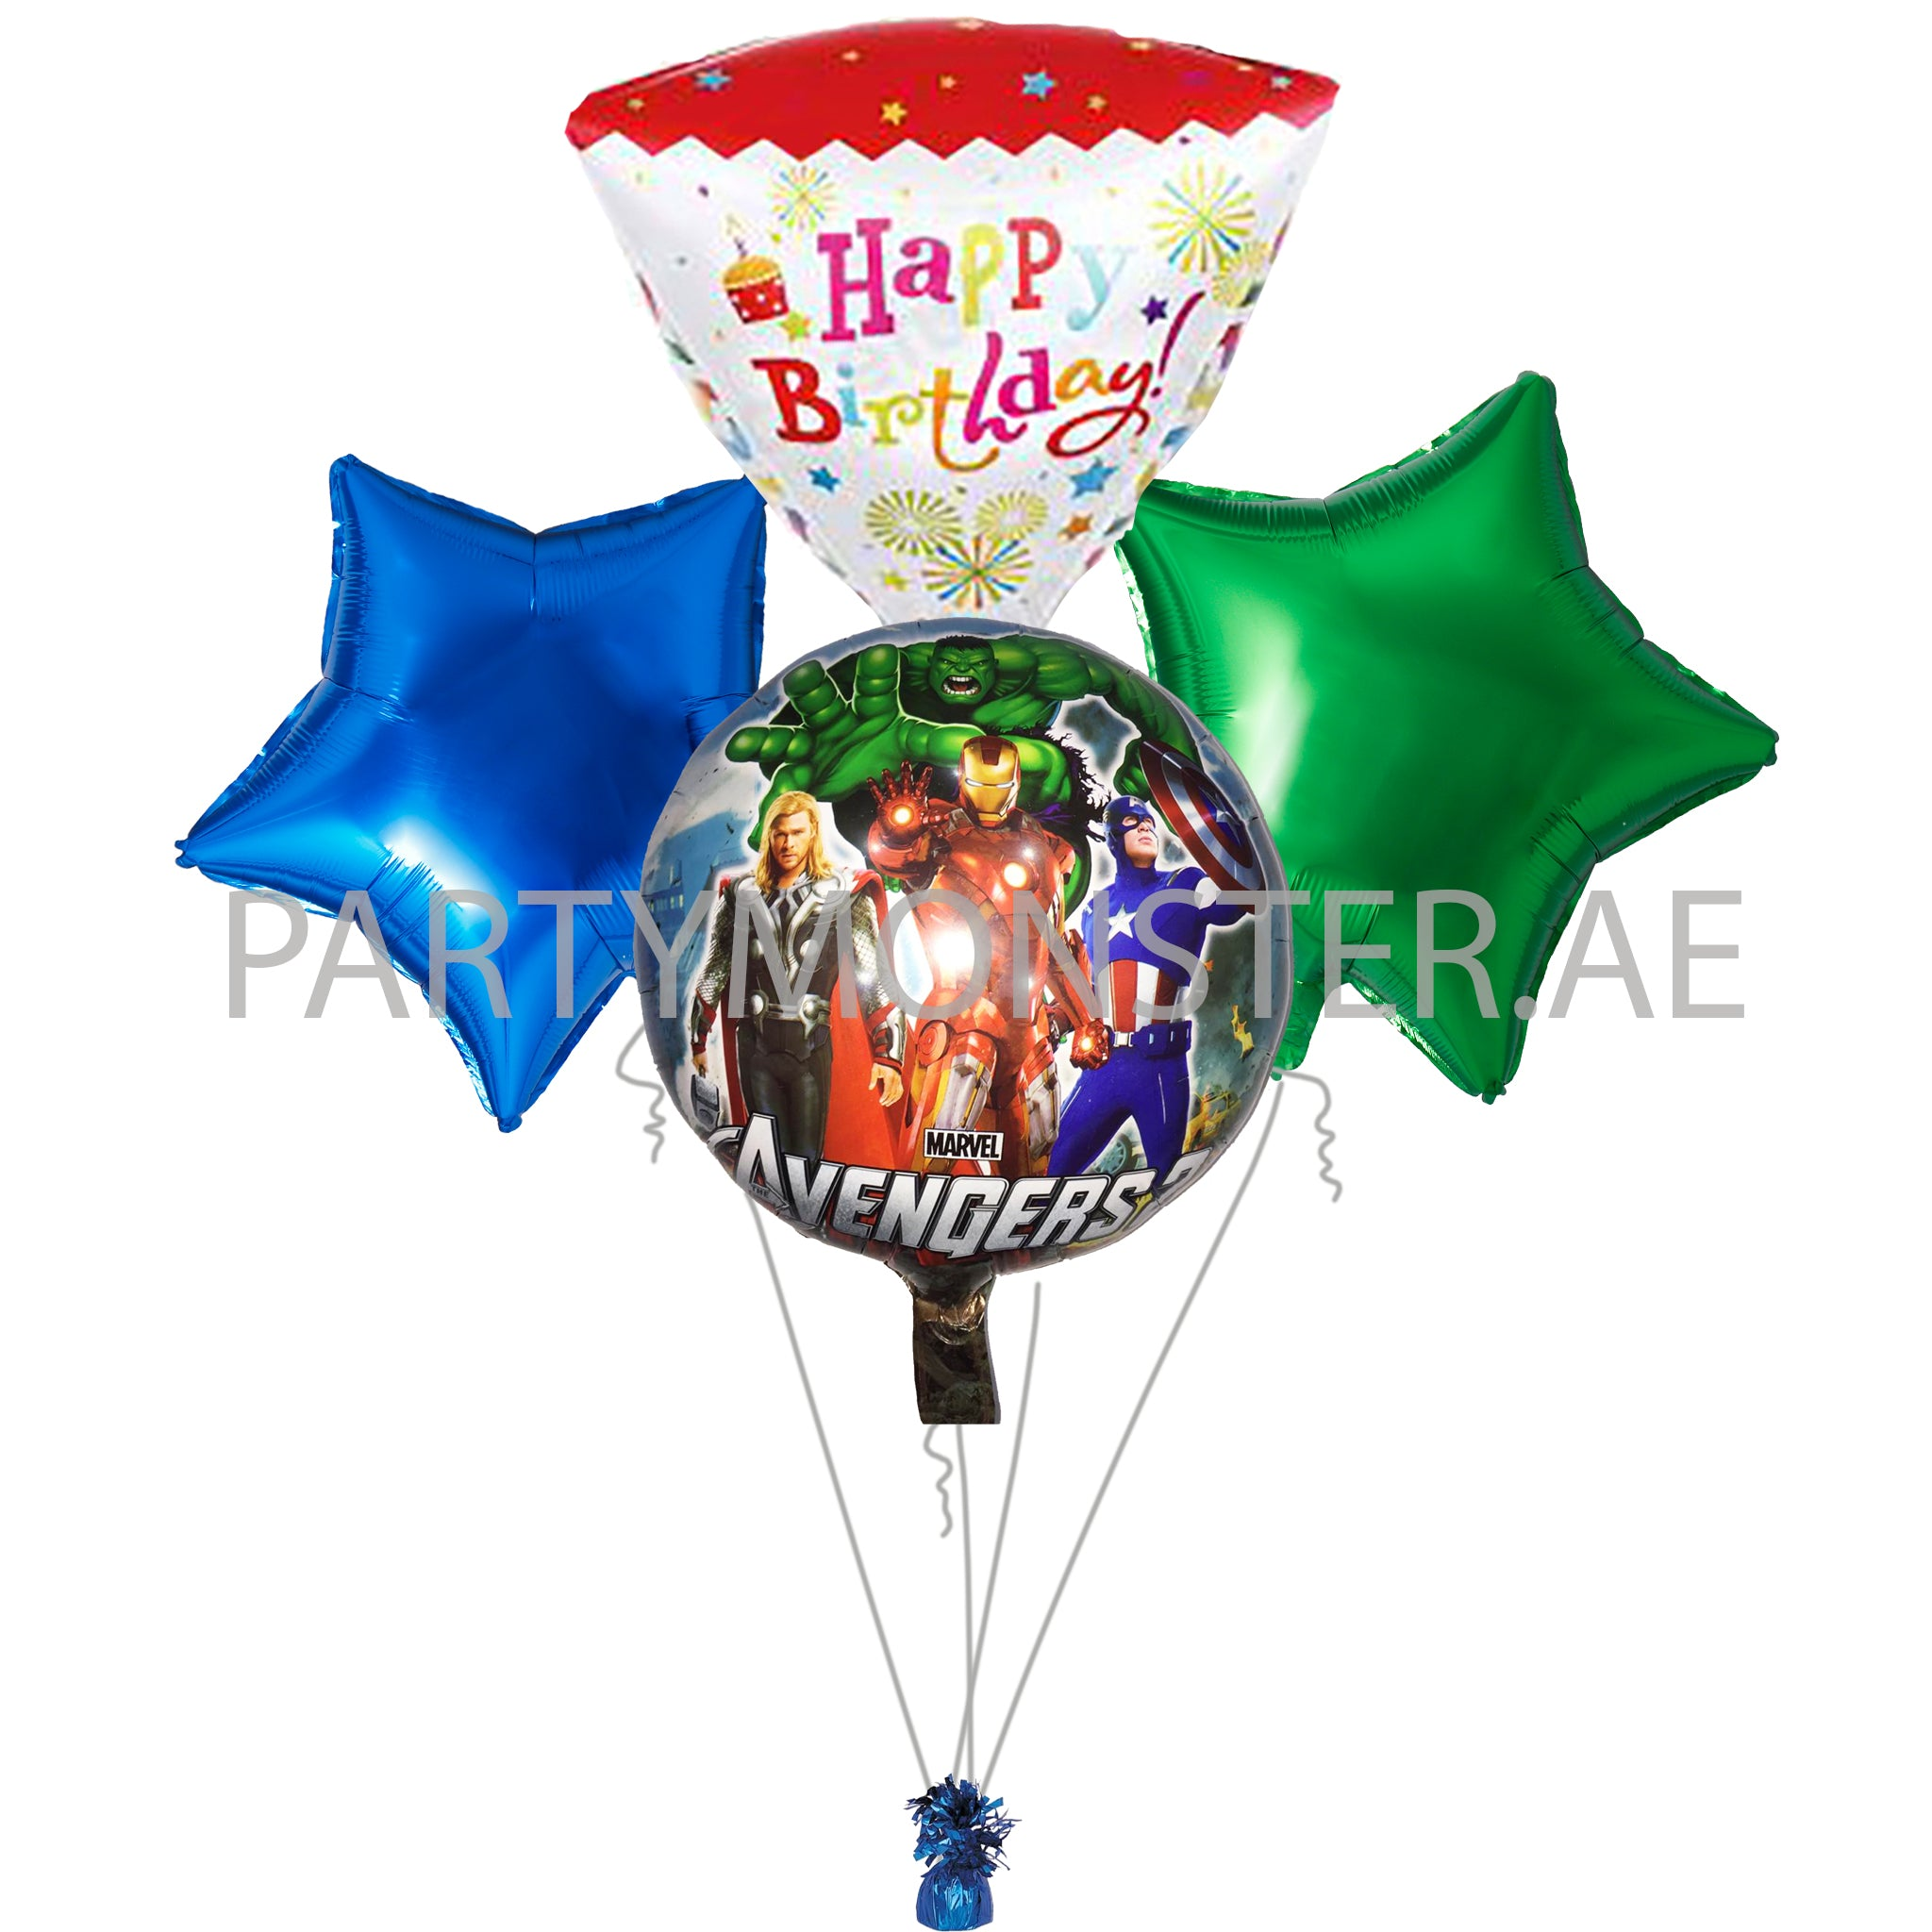 Avengers birthday balloons bouquet - PartyMonster.ae